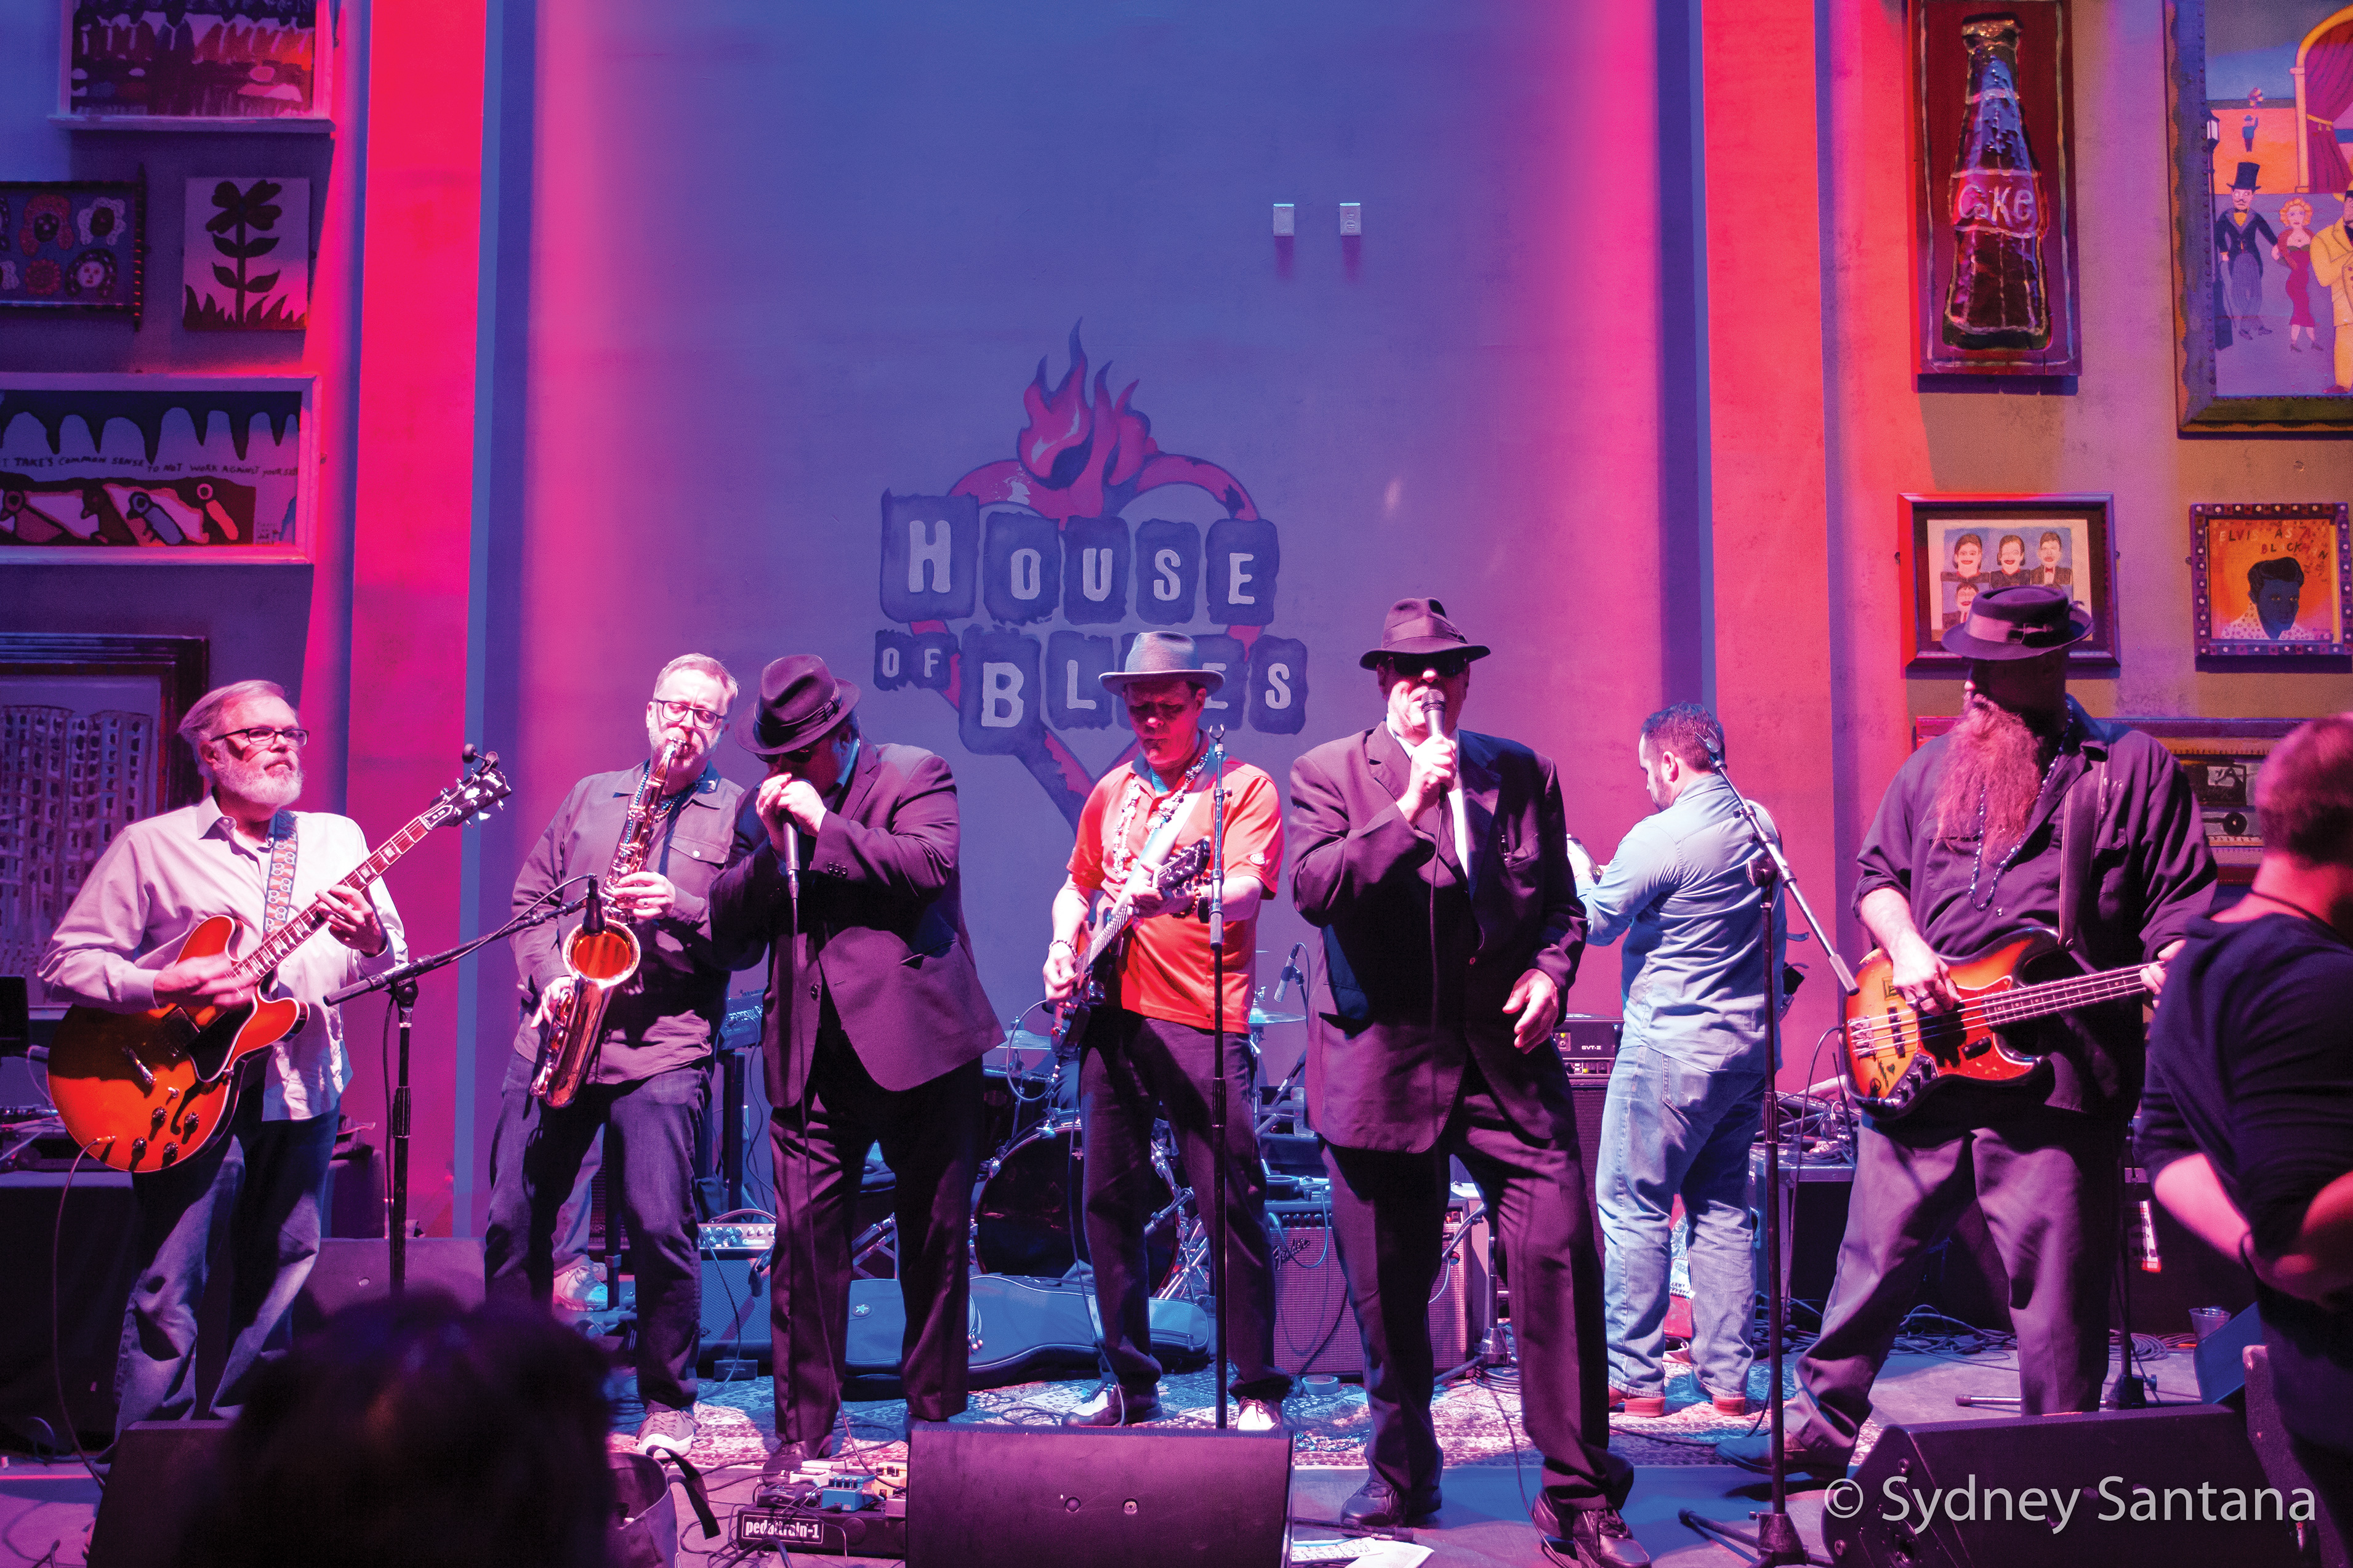 Grab Your Dancing Shoes – The House of Blues in Anaheim is Back!